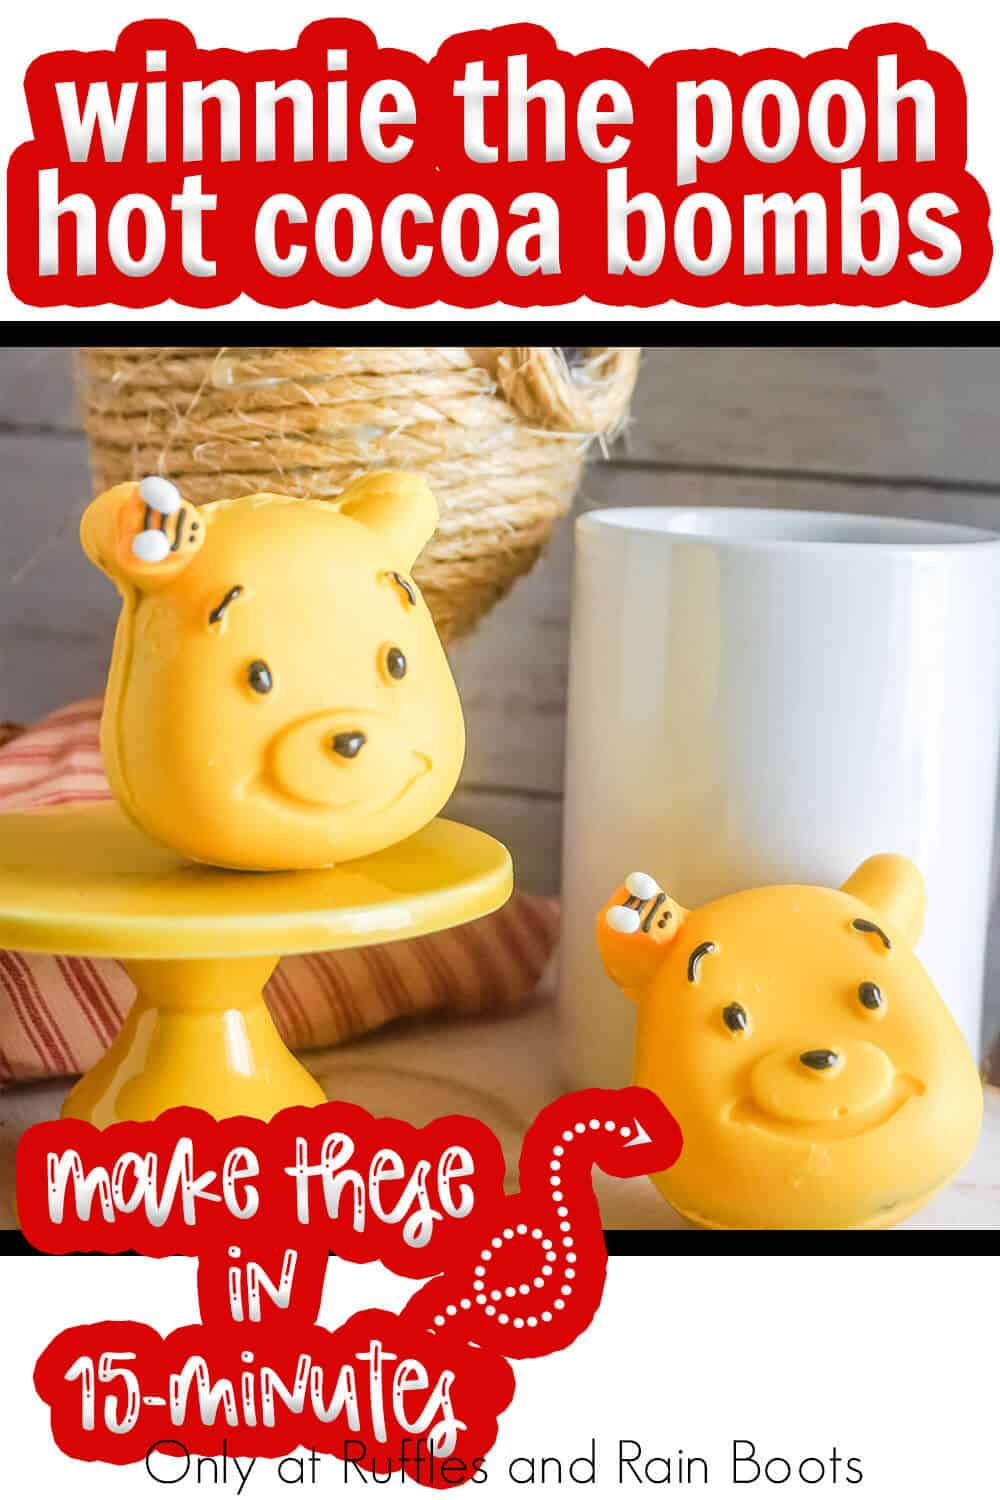 hot cocoa bomb winnie the pooh with text which reads winnie the pooh hot cocoa bombs make these in 15-minutes